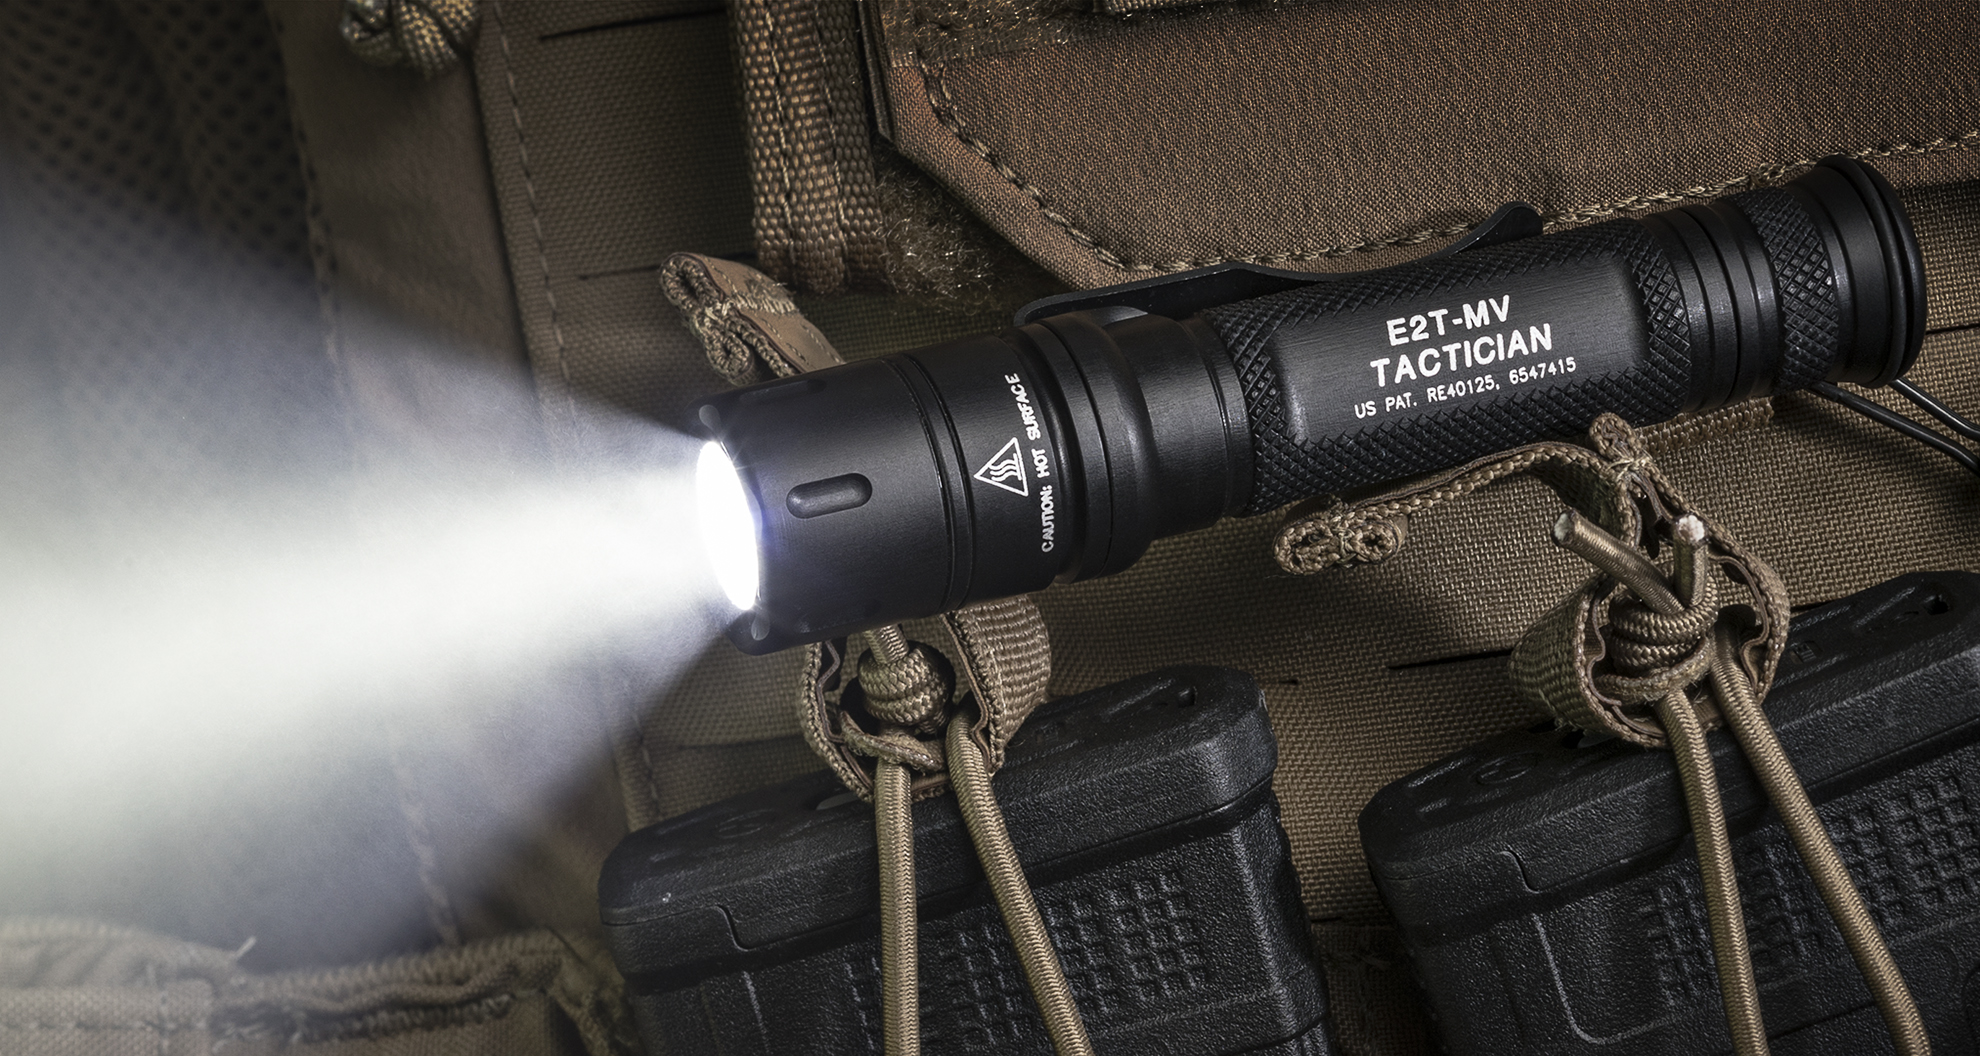 SureFire E2T0MV-Tactician with MaxVision Beam